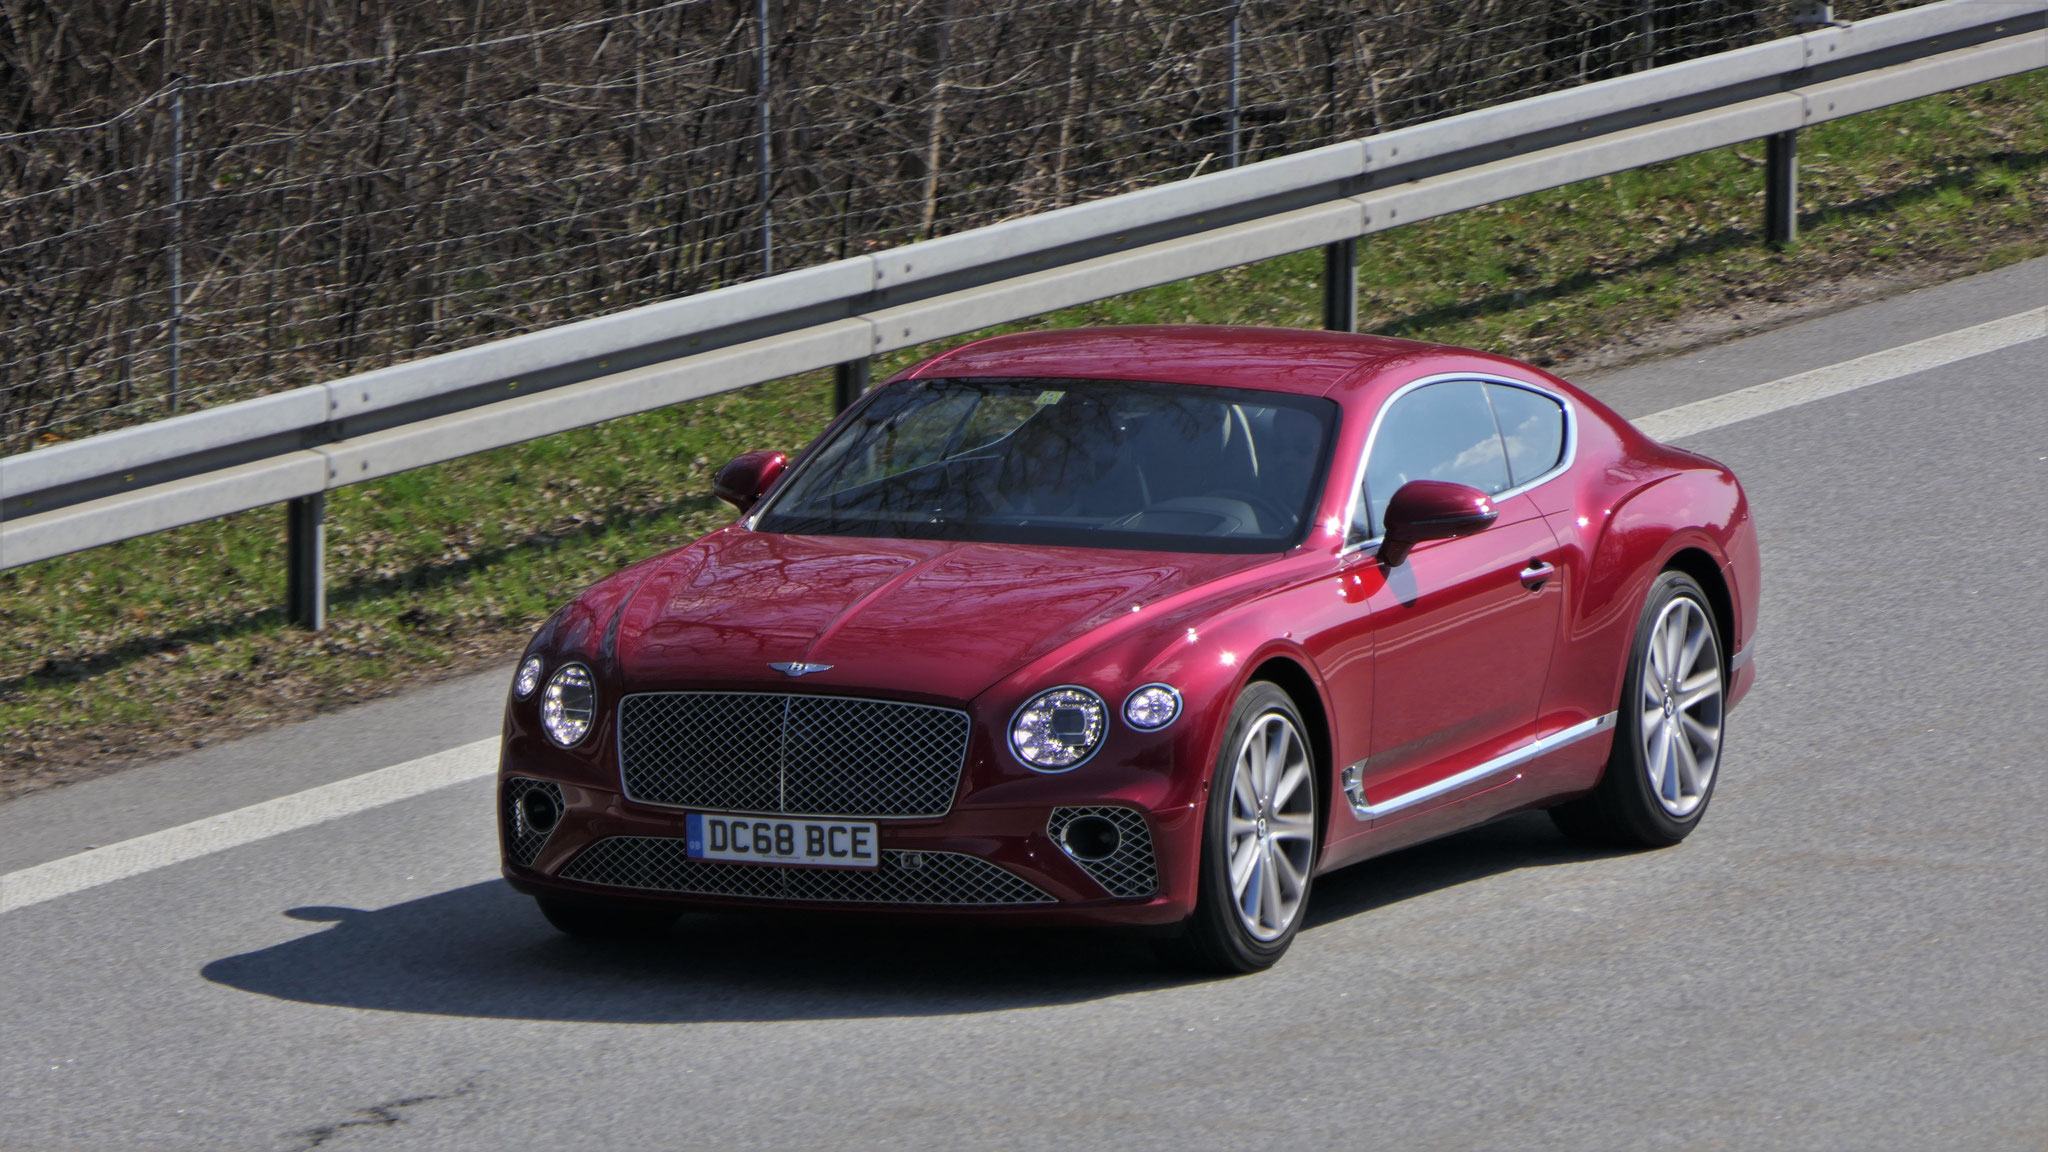 Bentley Continental GT - DC68-BCE (GB)